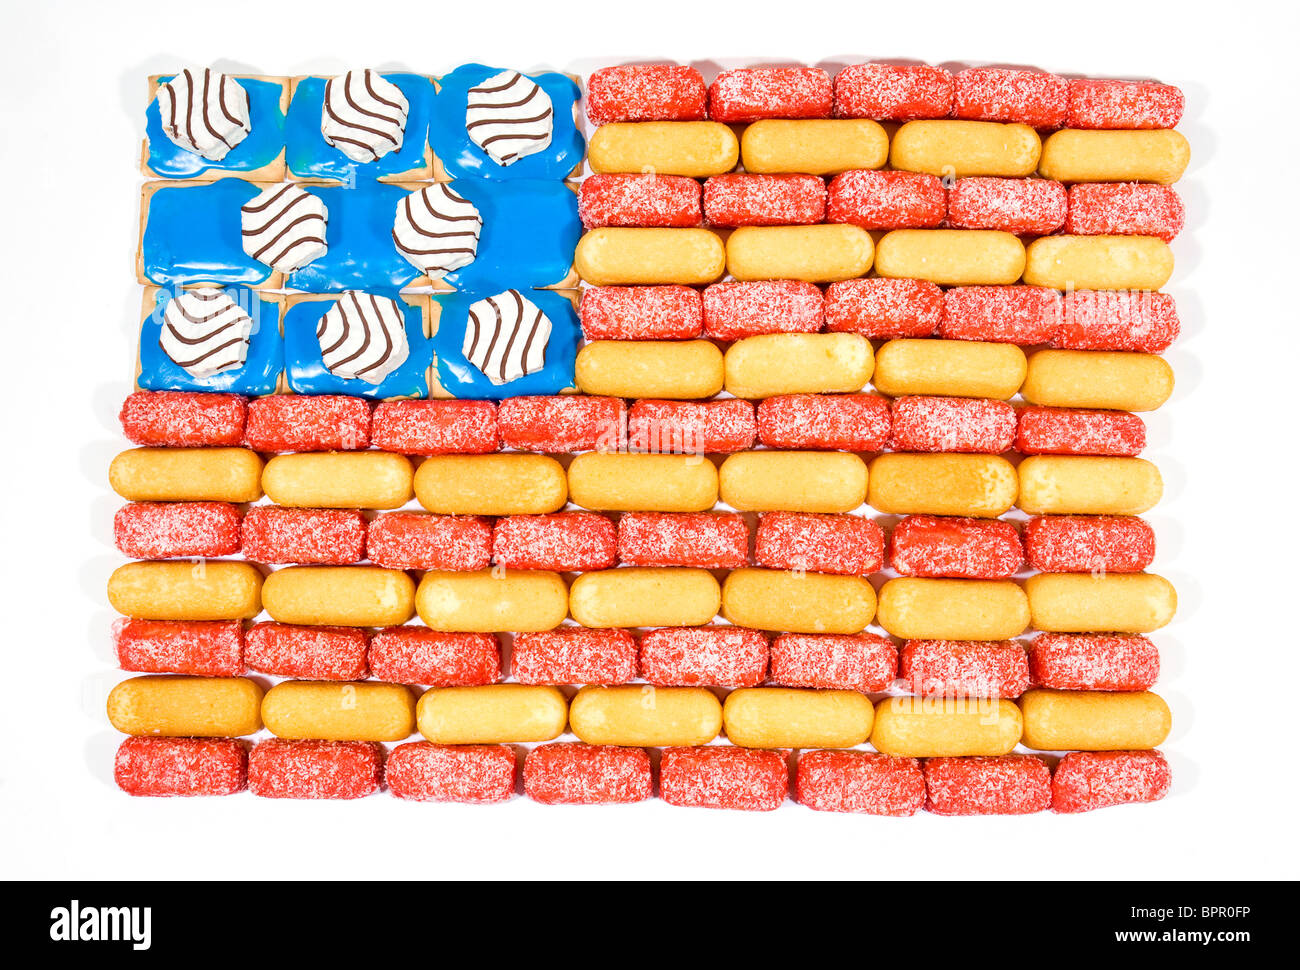 A American Flag made of junk food items including Twinkies, Zingers and Pop Tarts.  Stock Photo